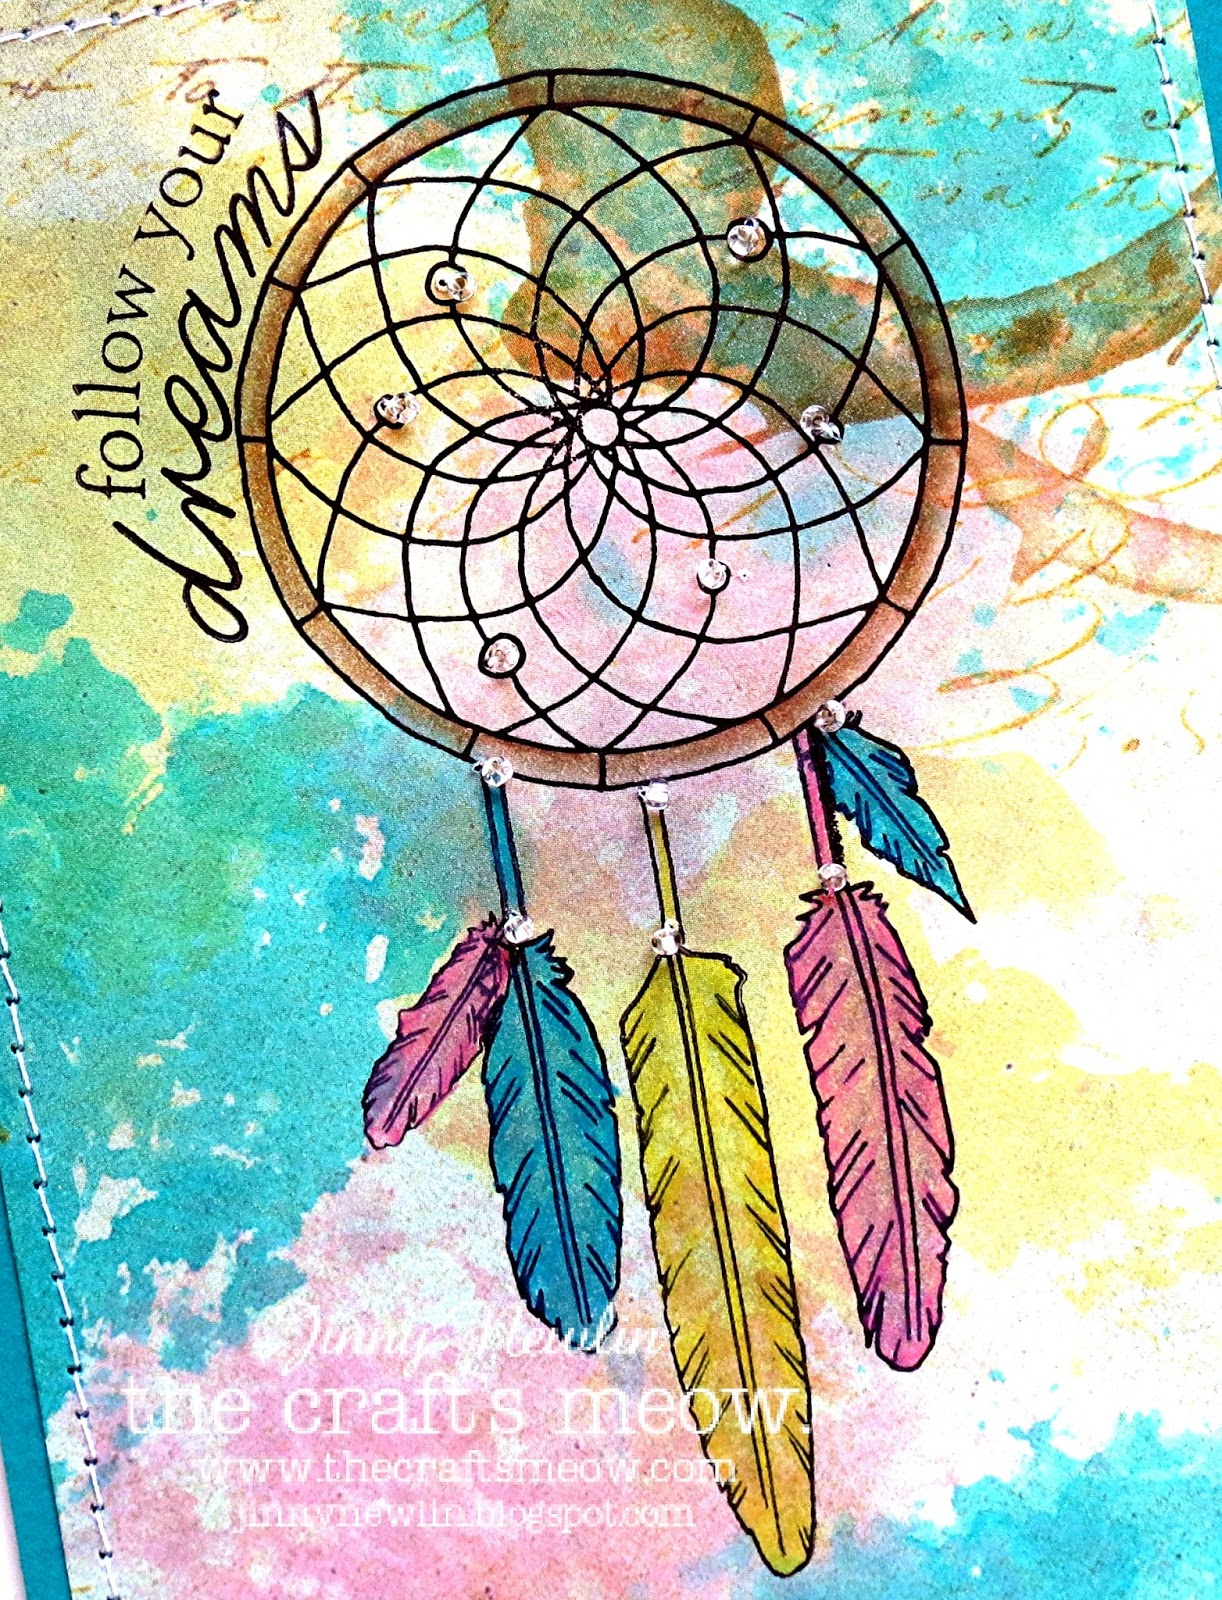 Wallpaper iphone dream catcher - The Feathers And Frame Were Colored In With Pencils And Mineral